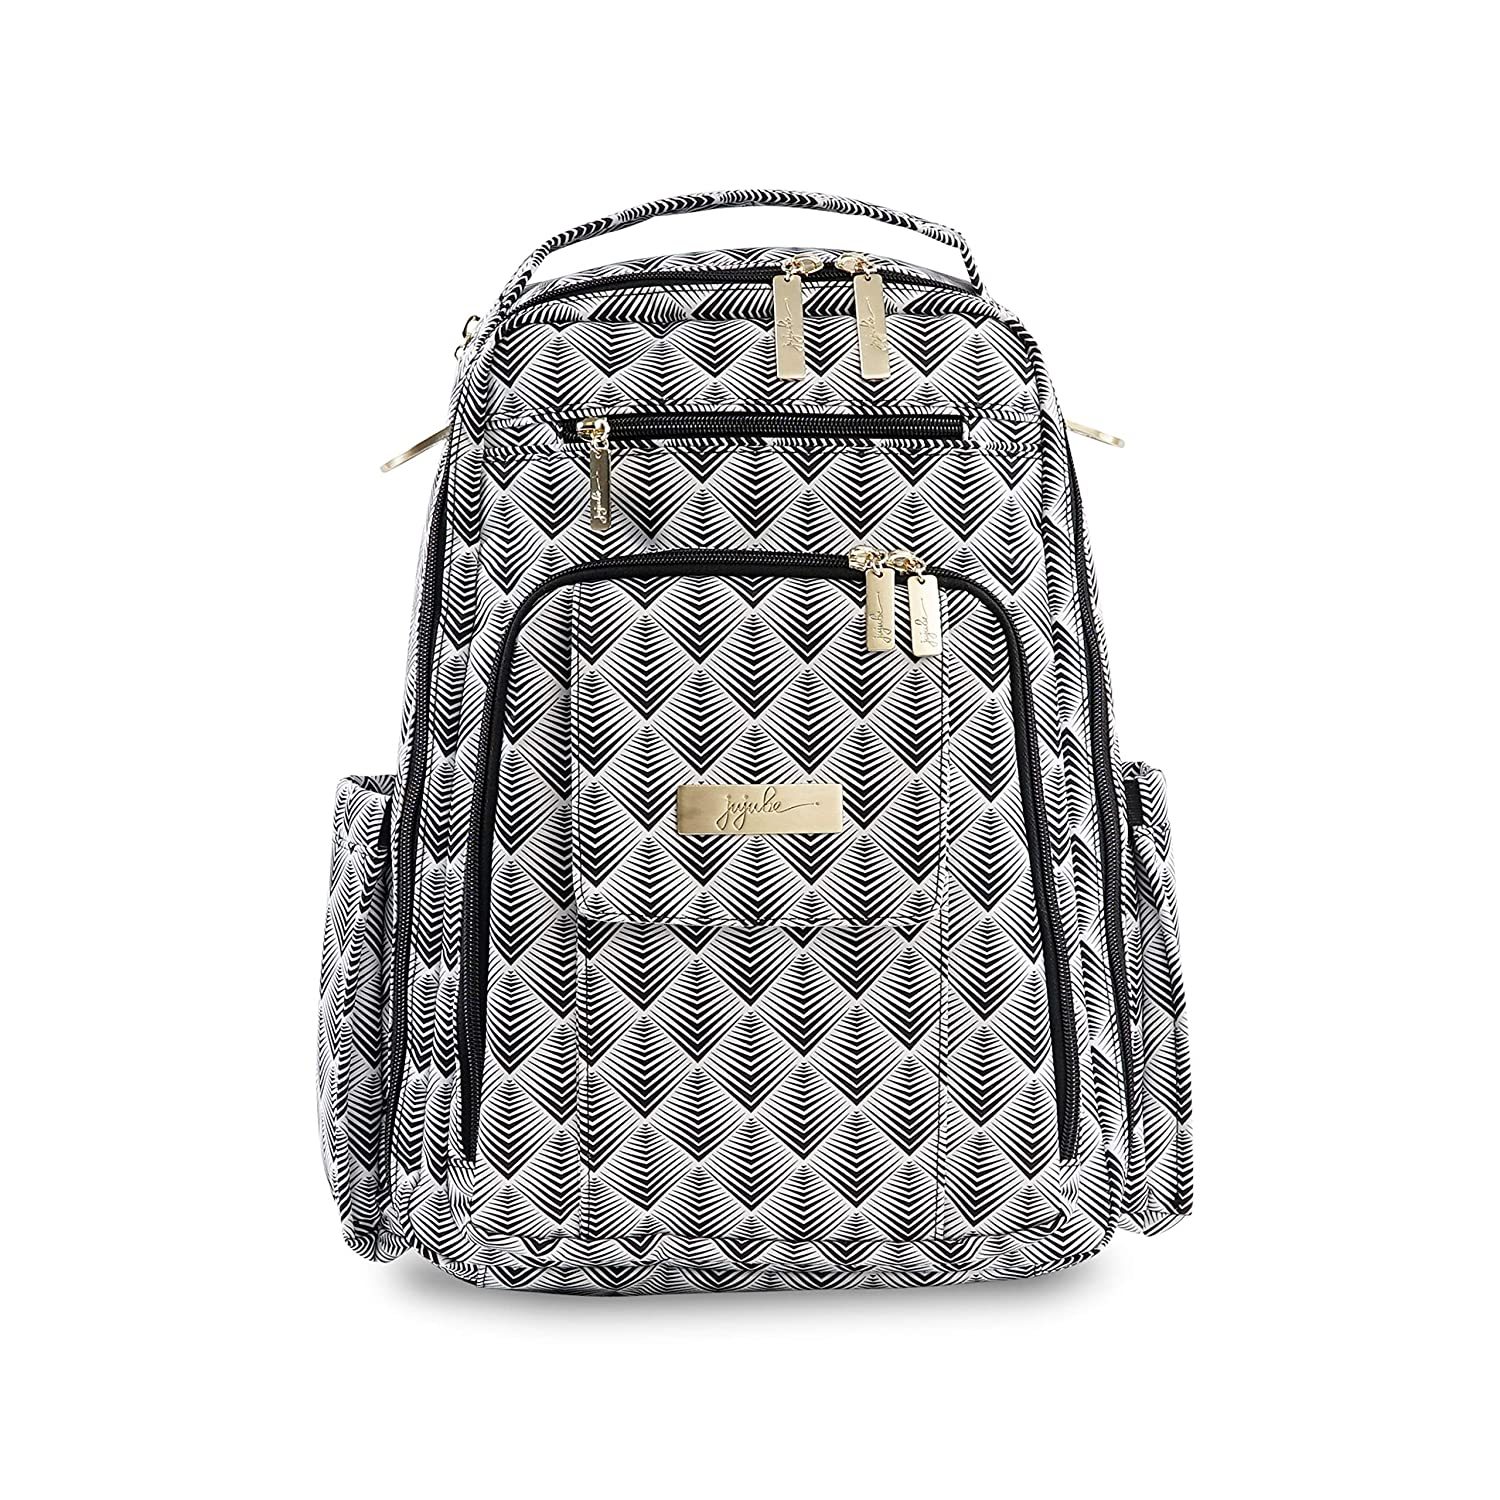 e4651f10249a JuJuBe Be Right Back Multi-Functional Structured Backpack/Diaper Bag,  Legacy Collection - The...